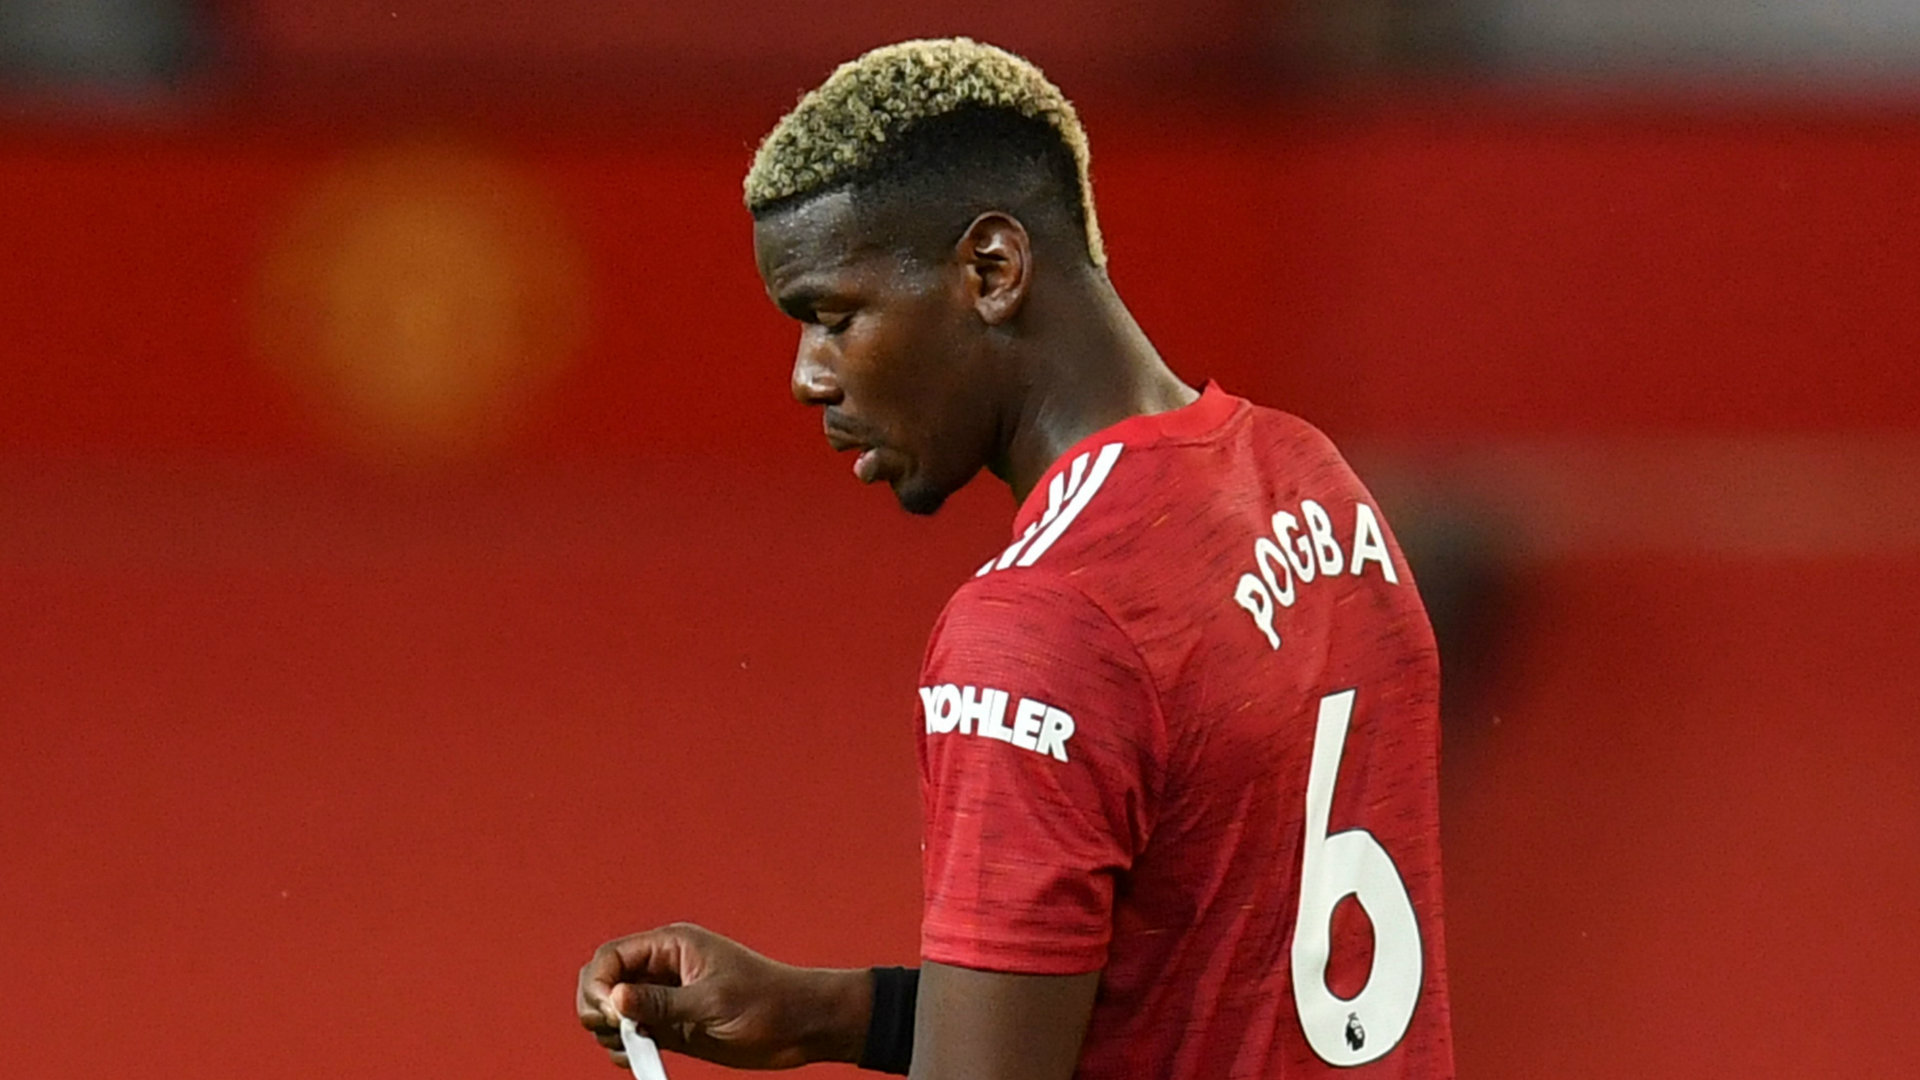 Solskjaer explains why Pogba is not in the Man Utd squad to face West Brom